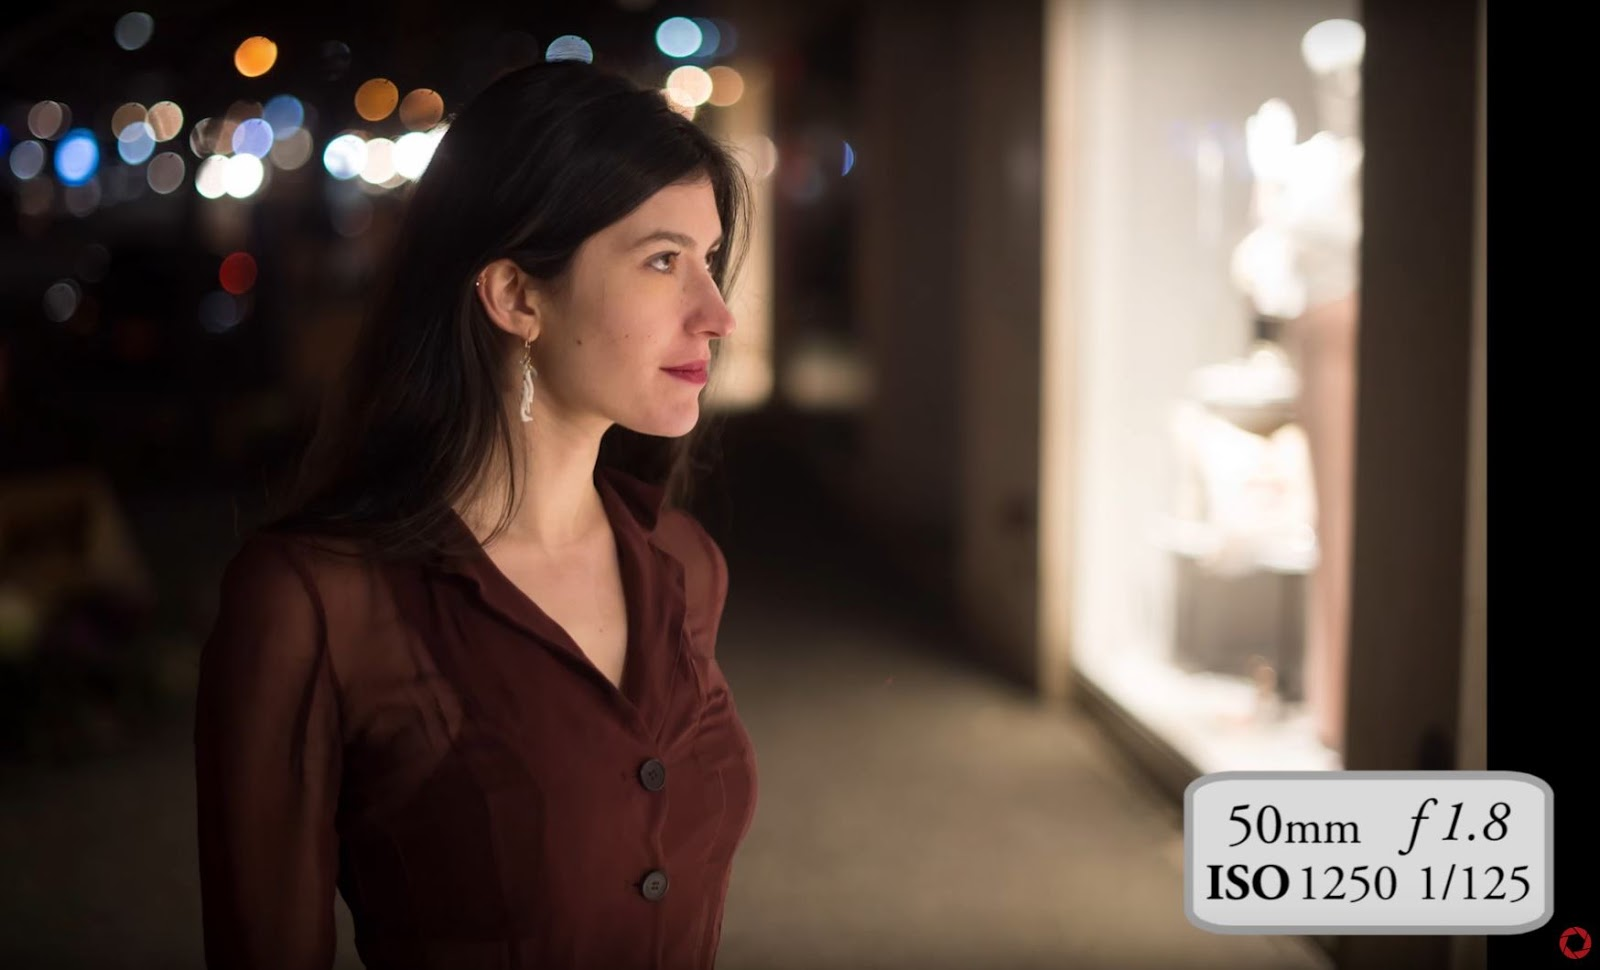 How to Get 3 Awesome Night Portraits in Under 5 Minutes